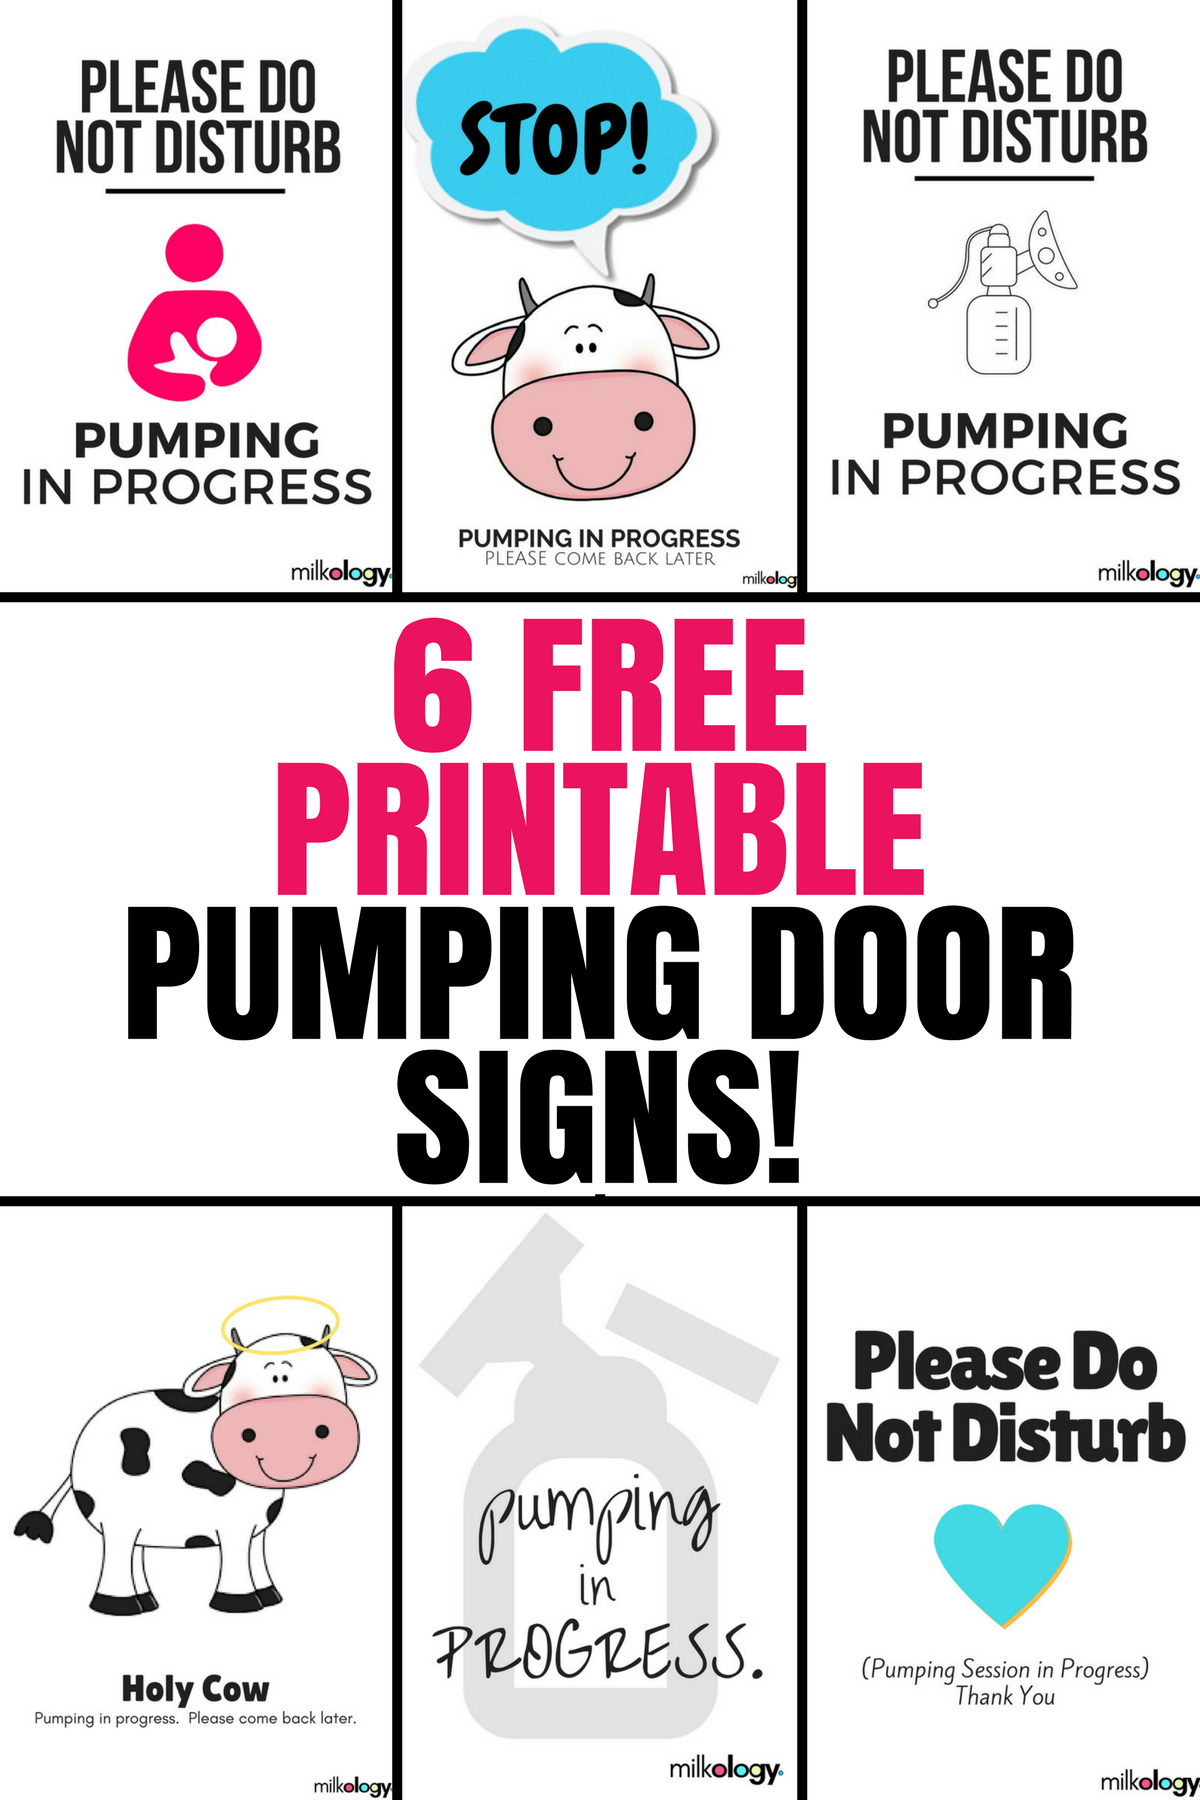 free printable pumping door signs for breastfeeding and pumping